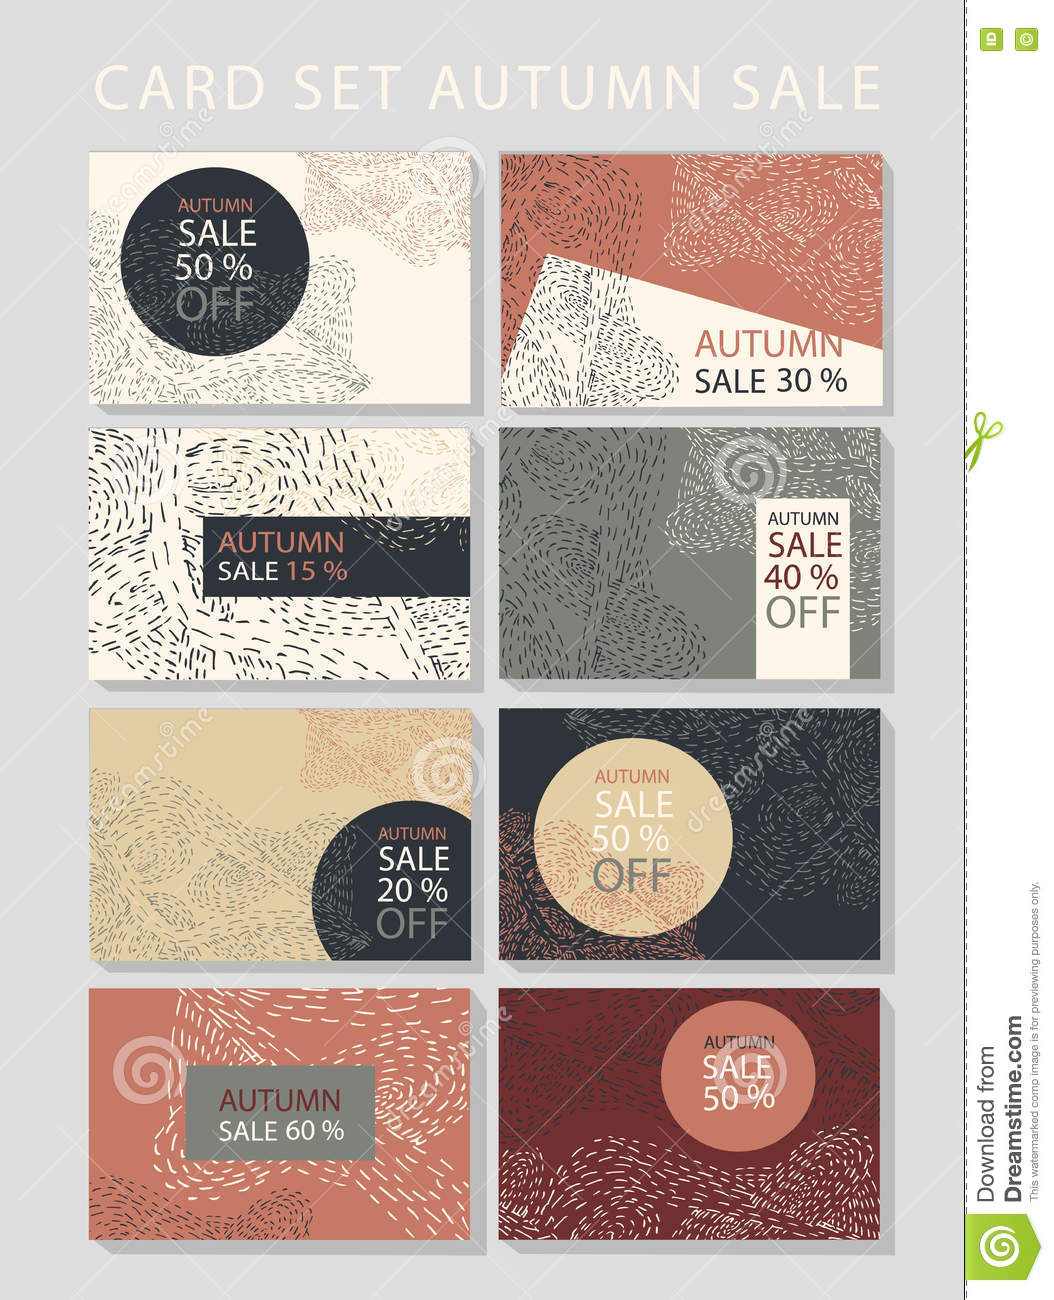 vector set of cards on sale discount concept abstract backgrounds